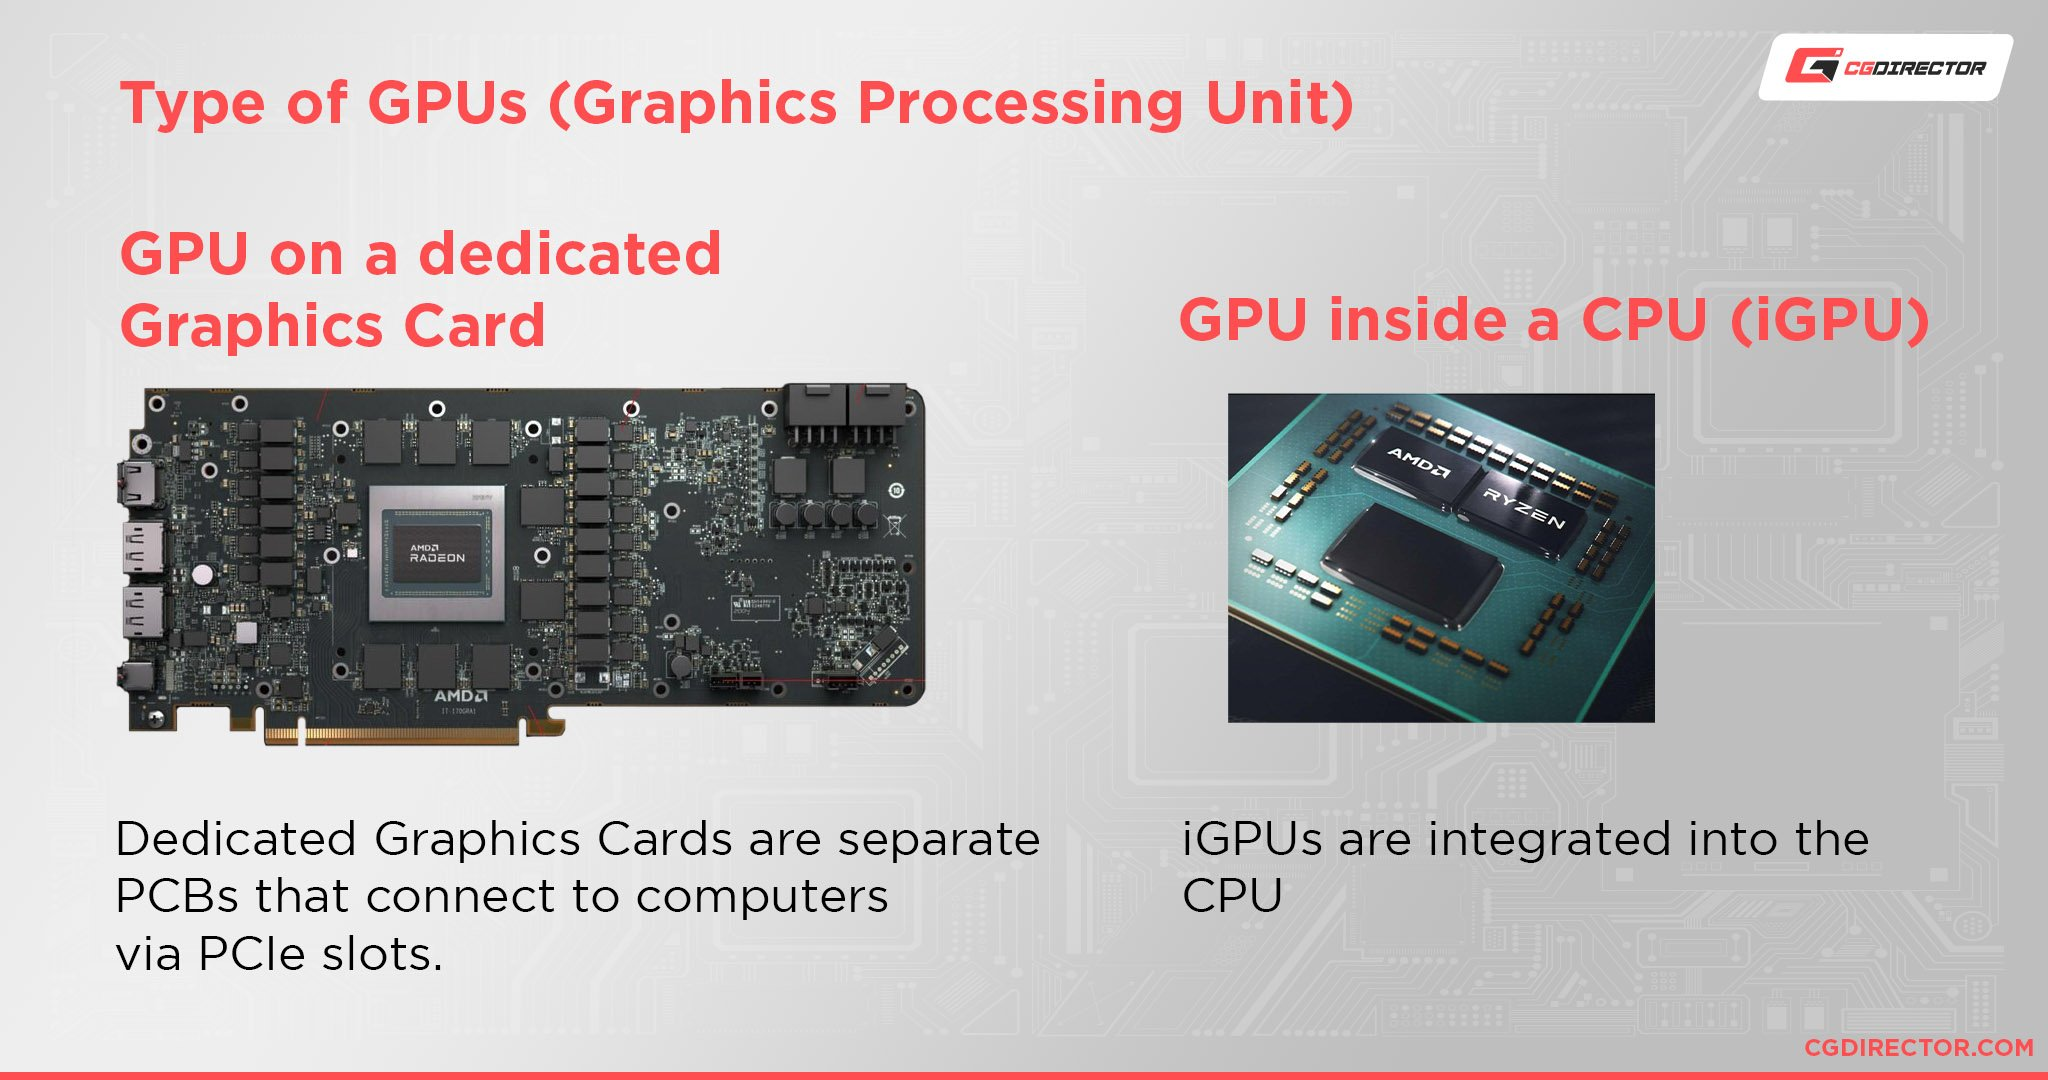 Type of GPUs - On a Dedicated Graphics Card and integrated into a CPU